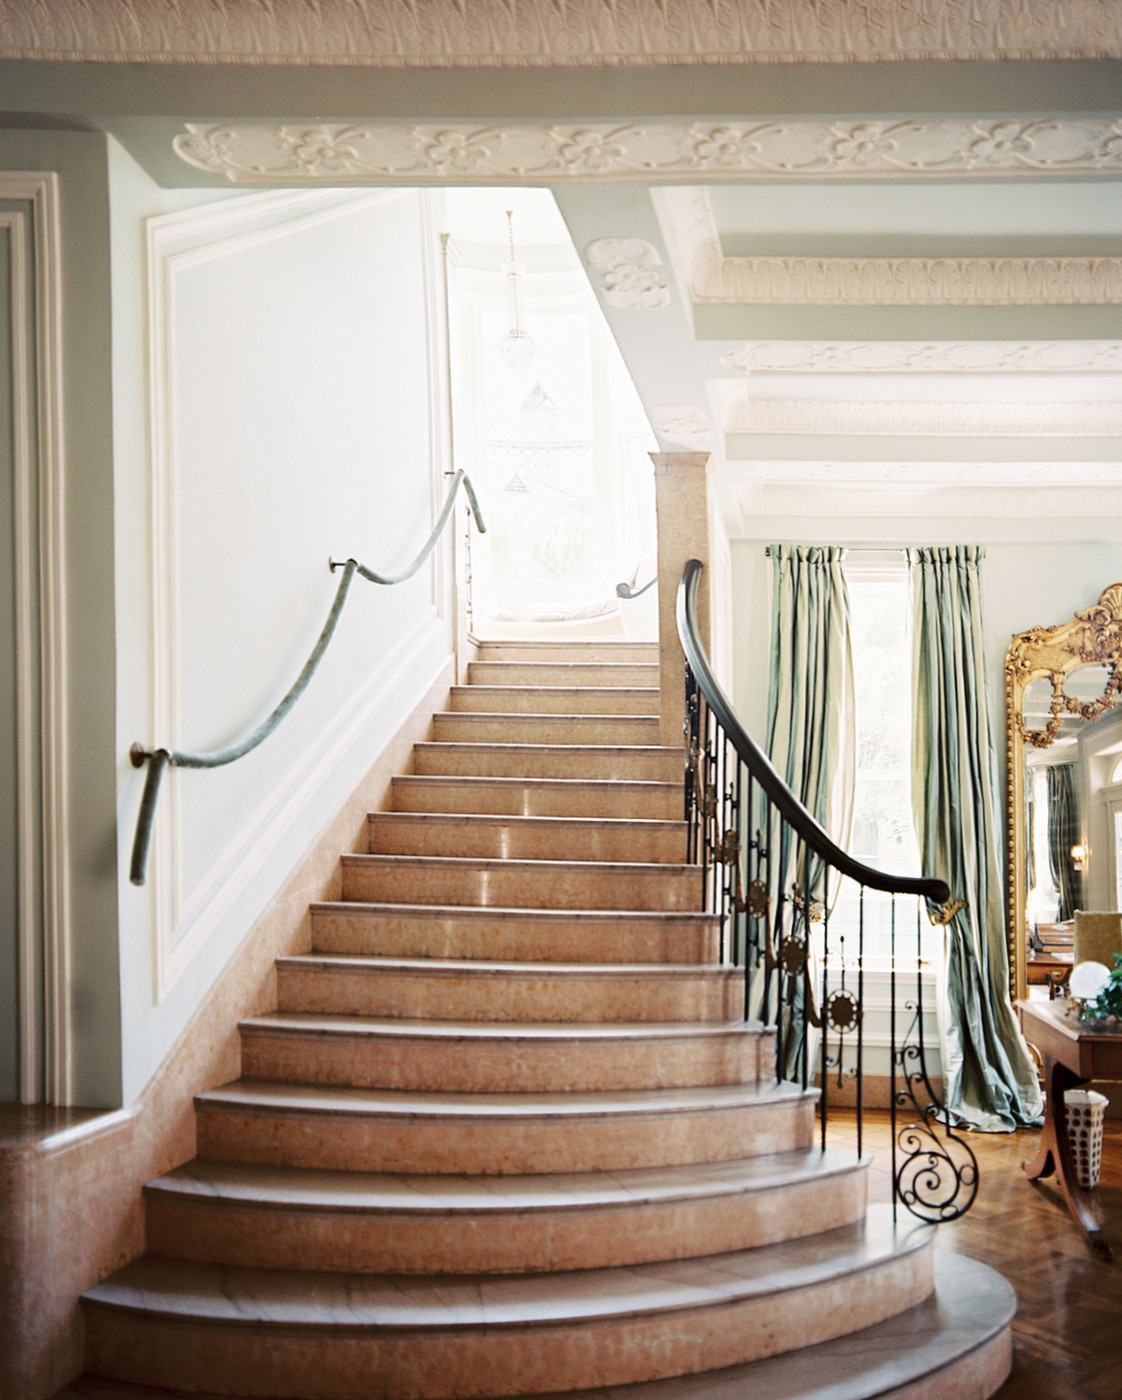 Marble Stairs Photos, Design, Ideas, Remodel, And Decor   Lonny